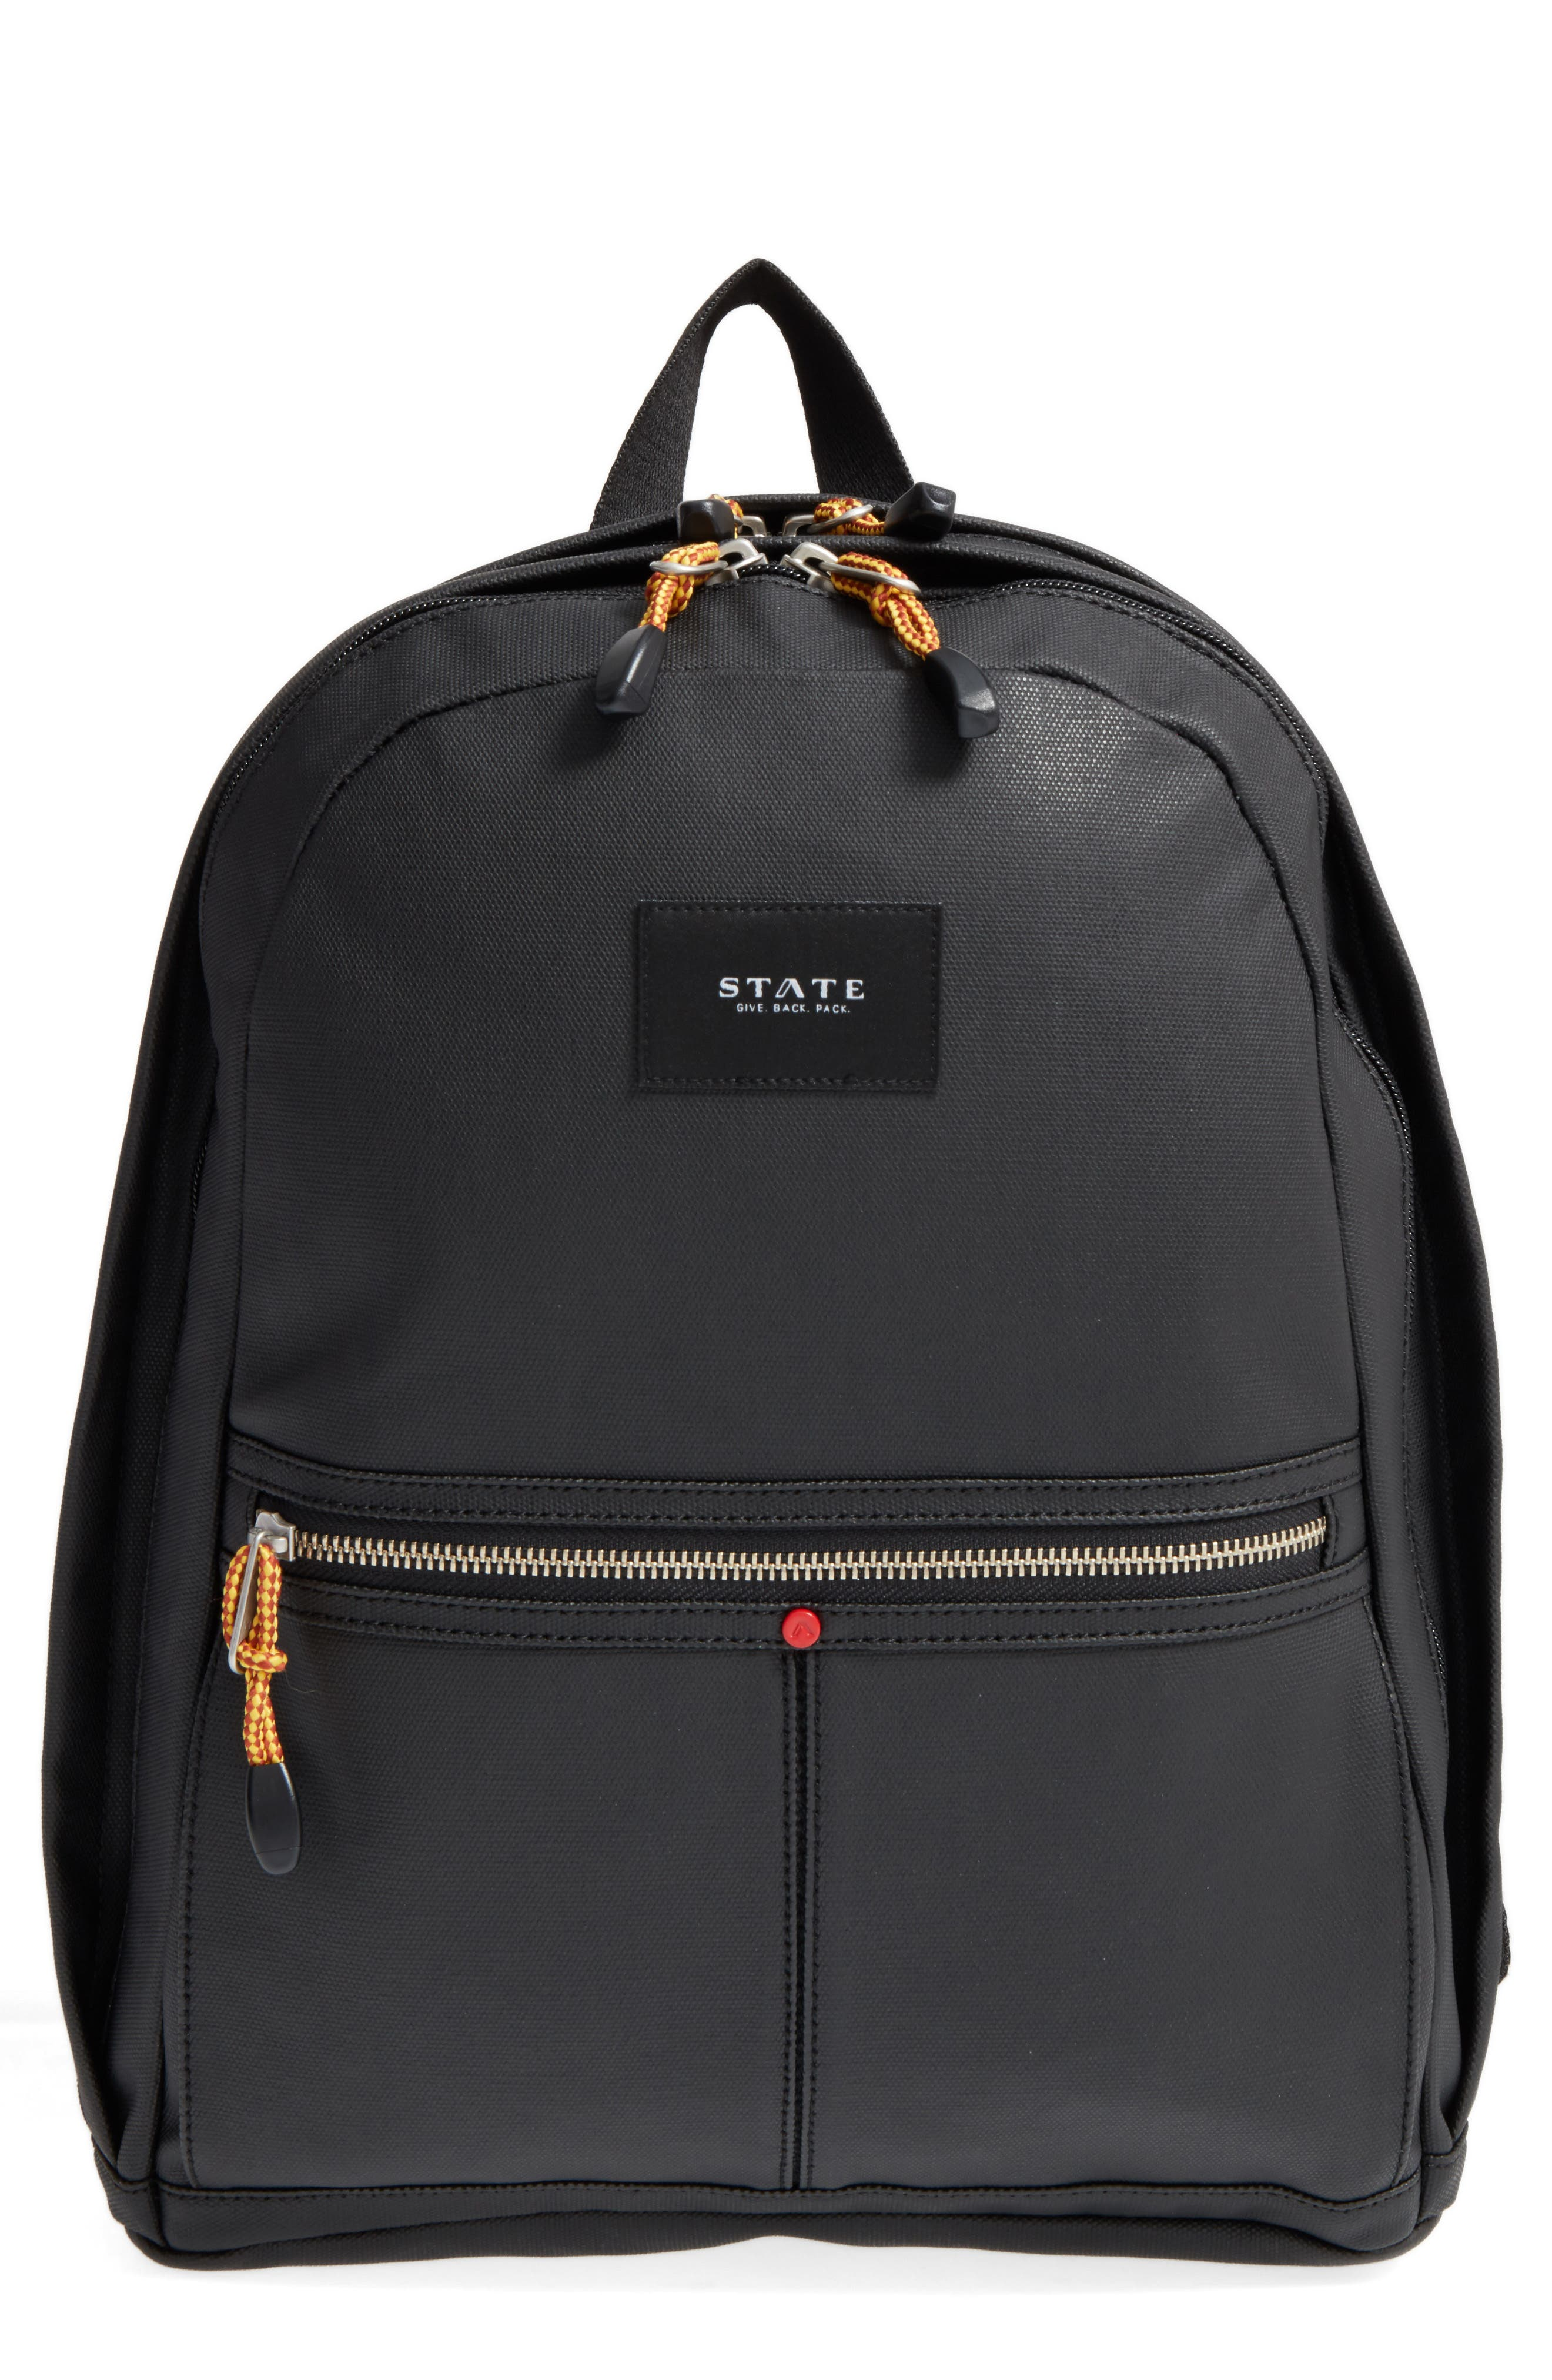 Alternate Image 1 Selected - STATE Bags Greenpoint Kent Backpack